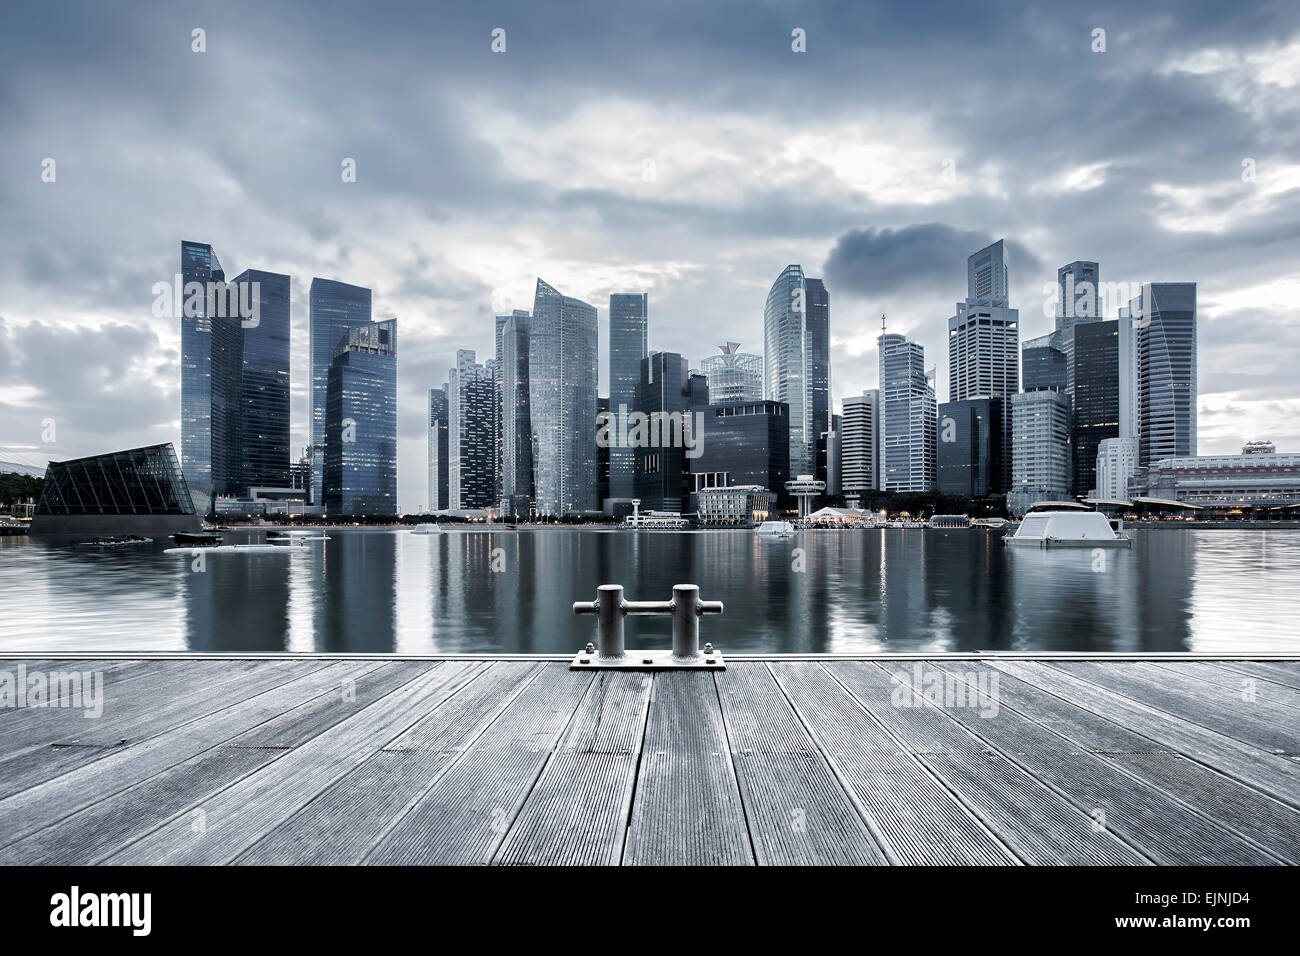 Singapore city skyline seen from the pier - Stock Image